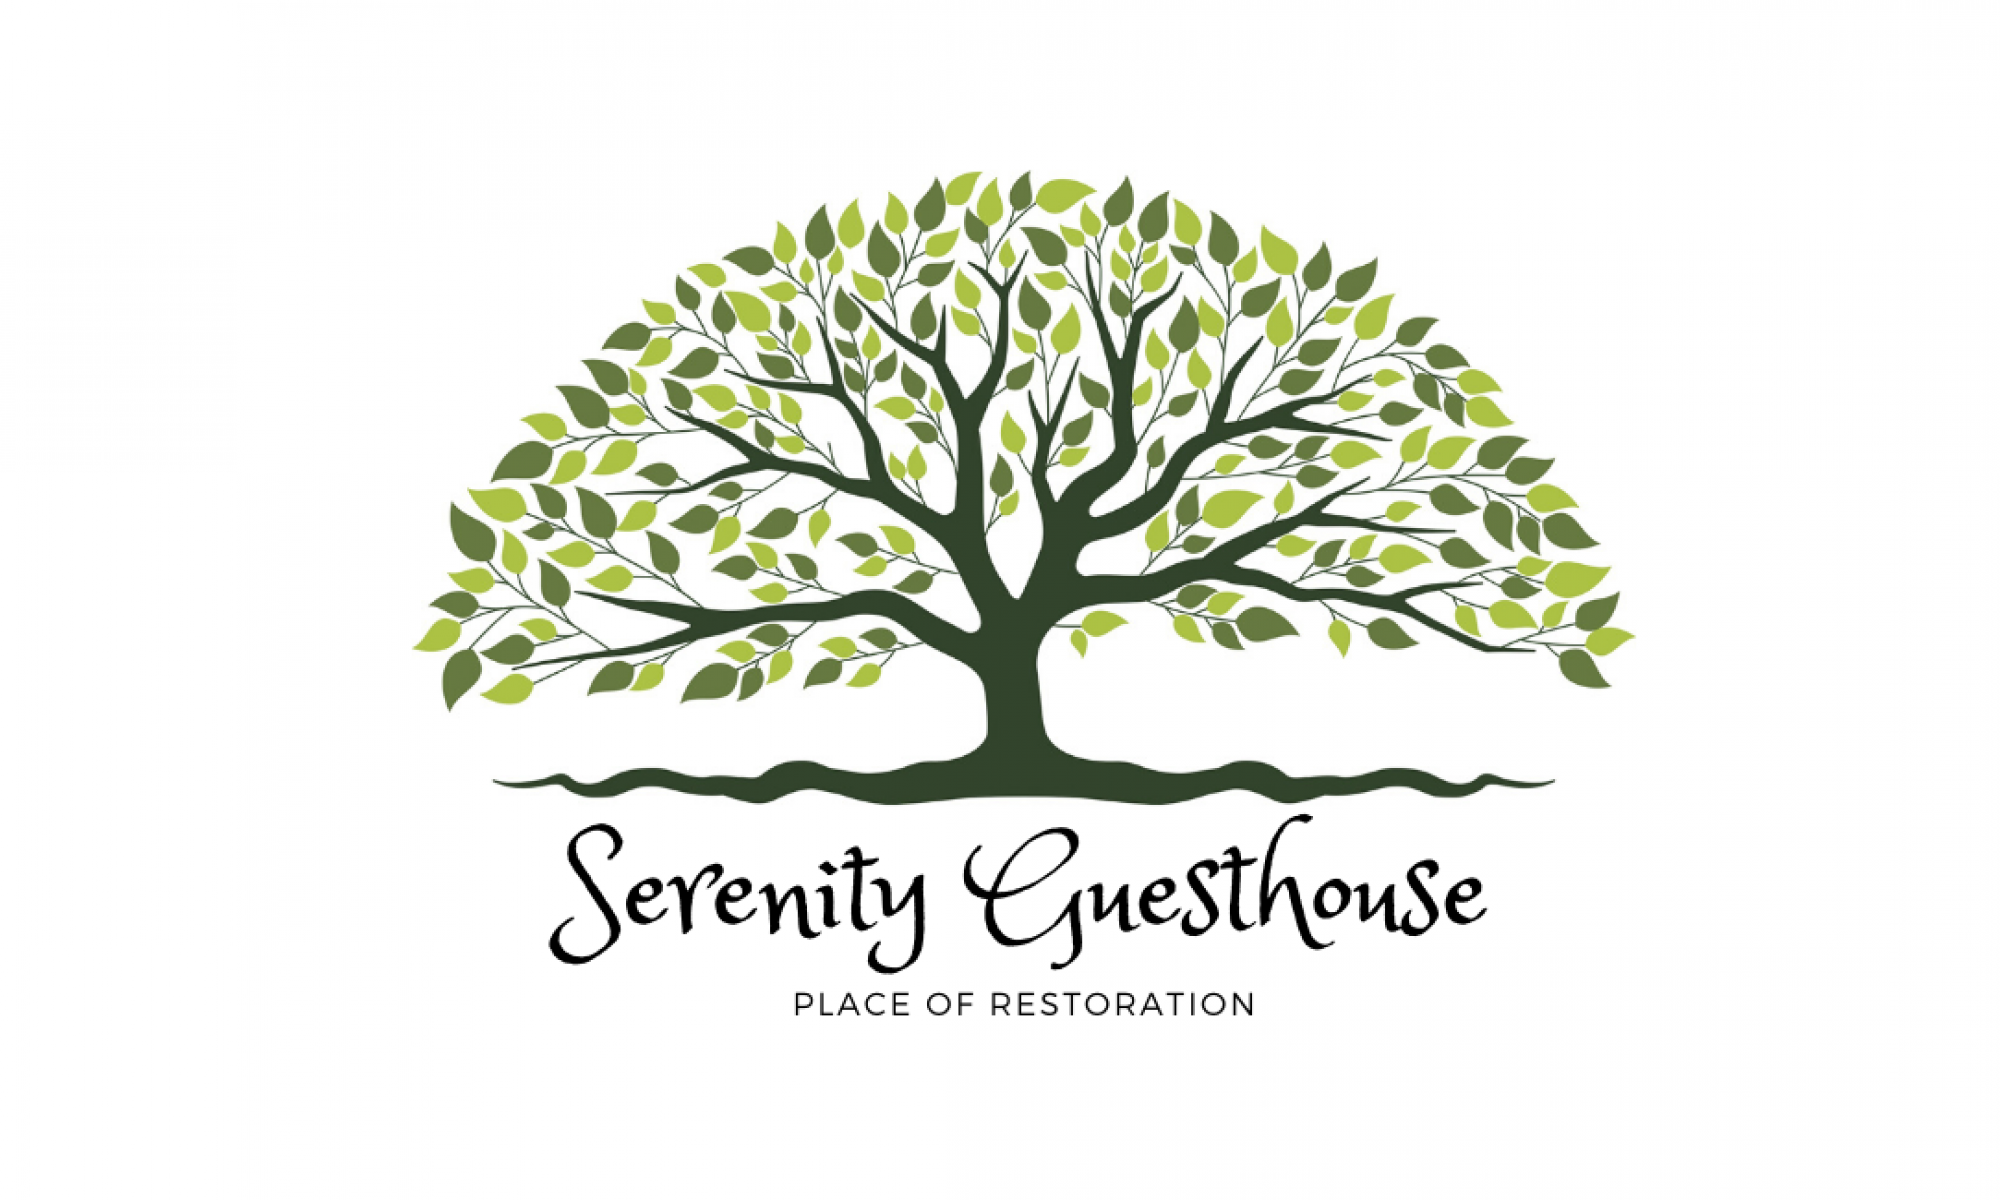 Serenity Guesthouse